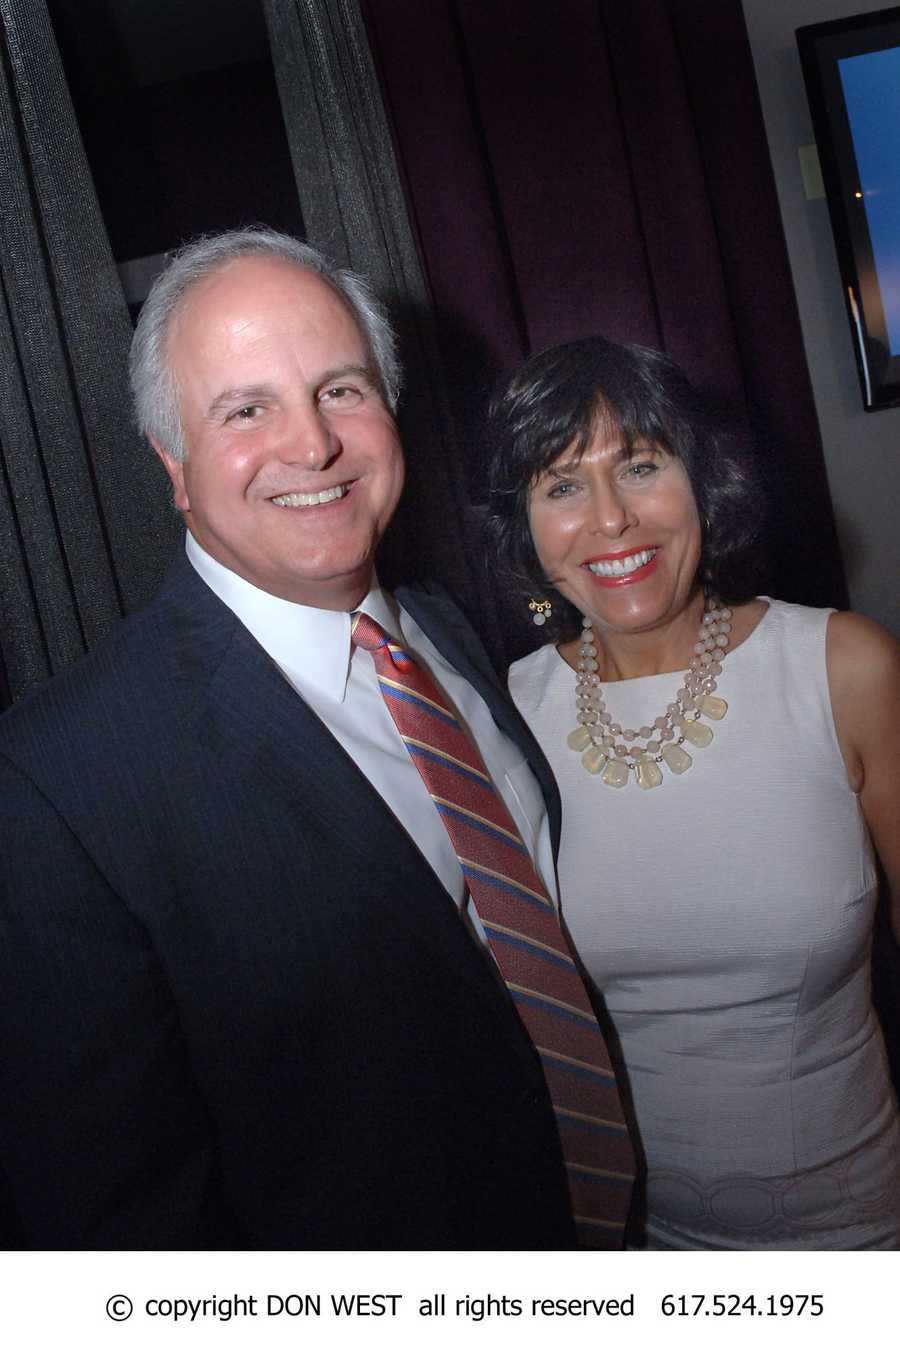 WCVB's President and General Manager, Bill Fine attended the event with his wife Gail.